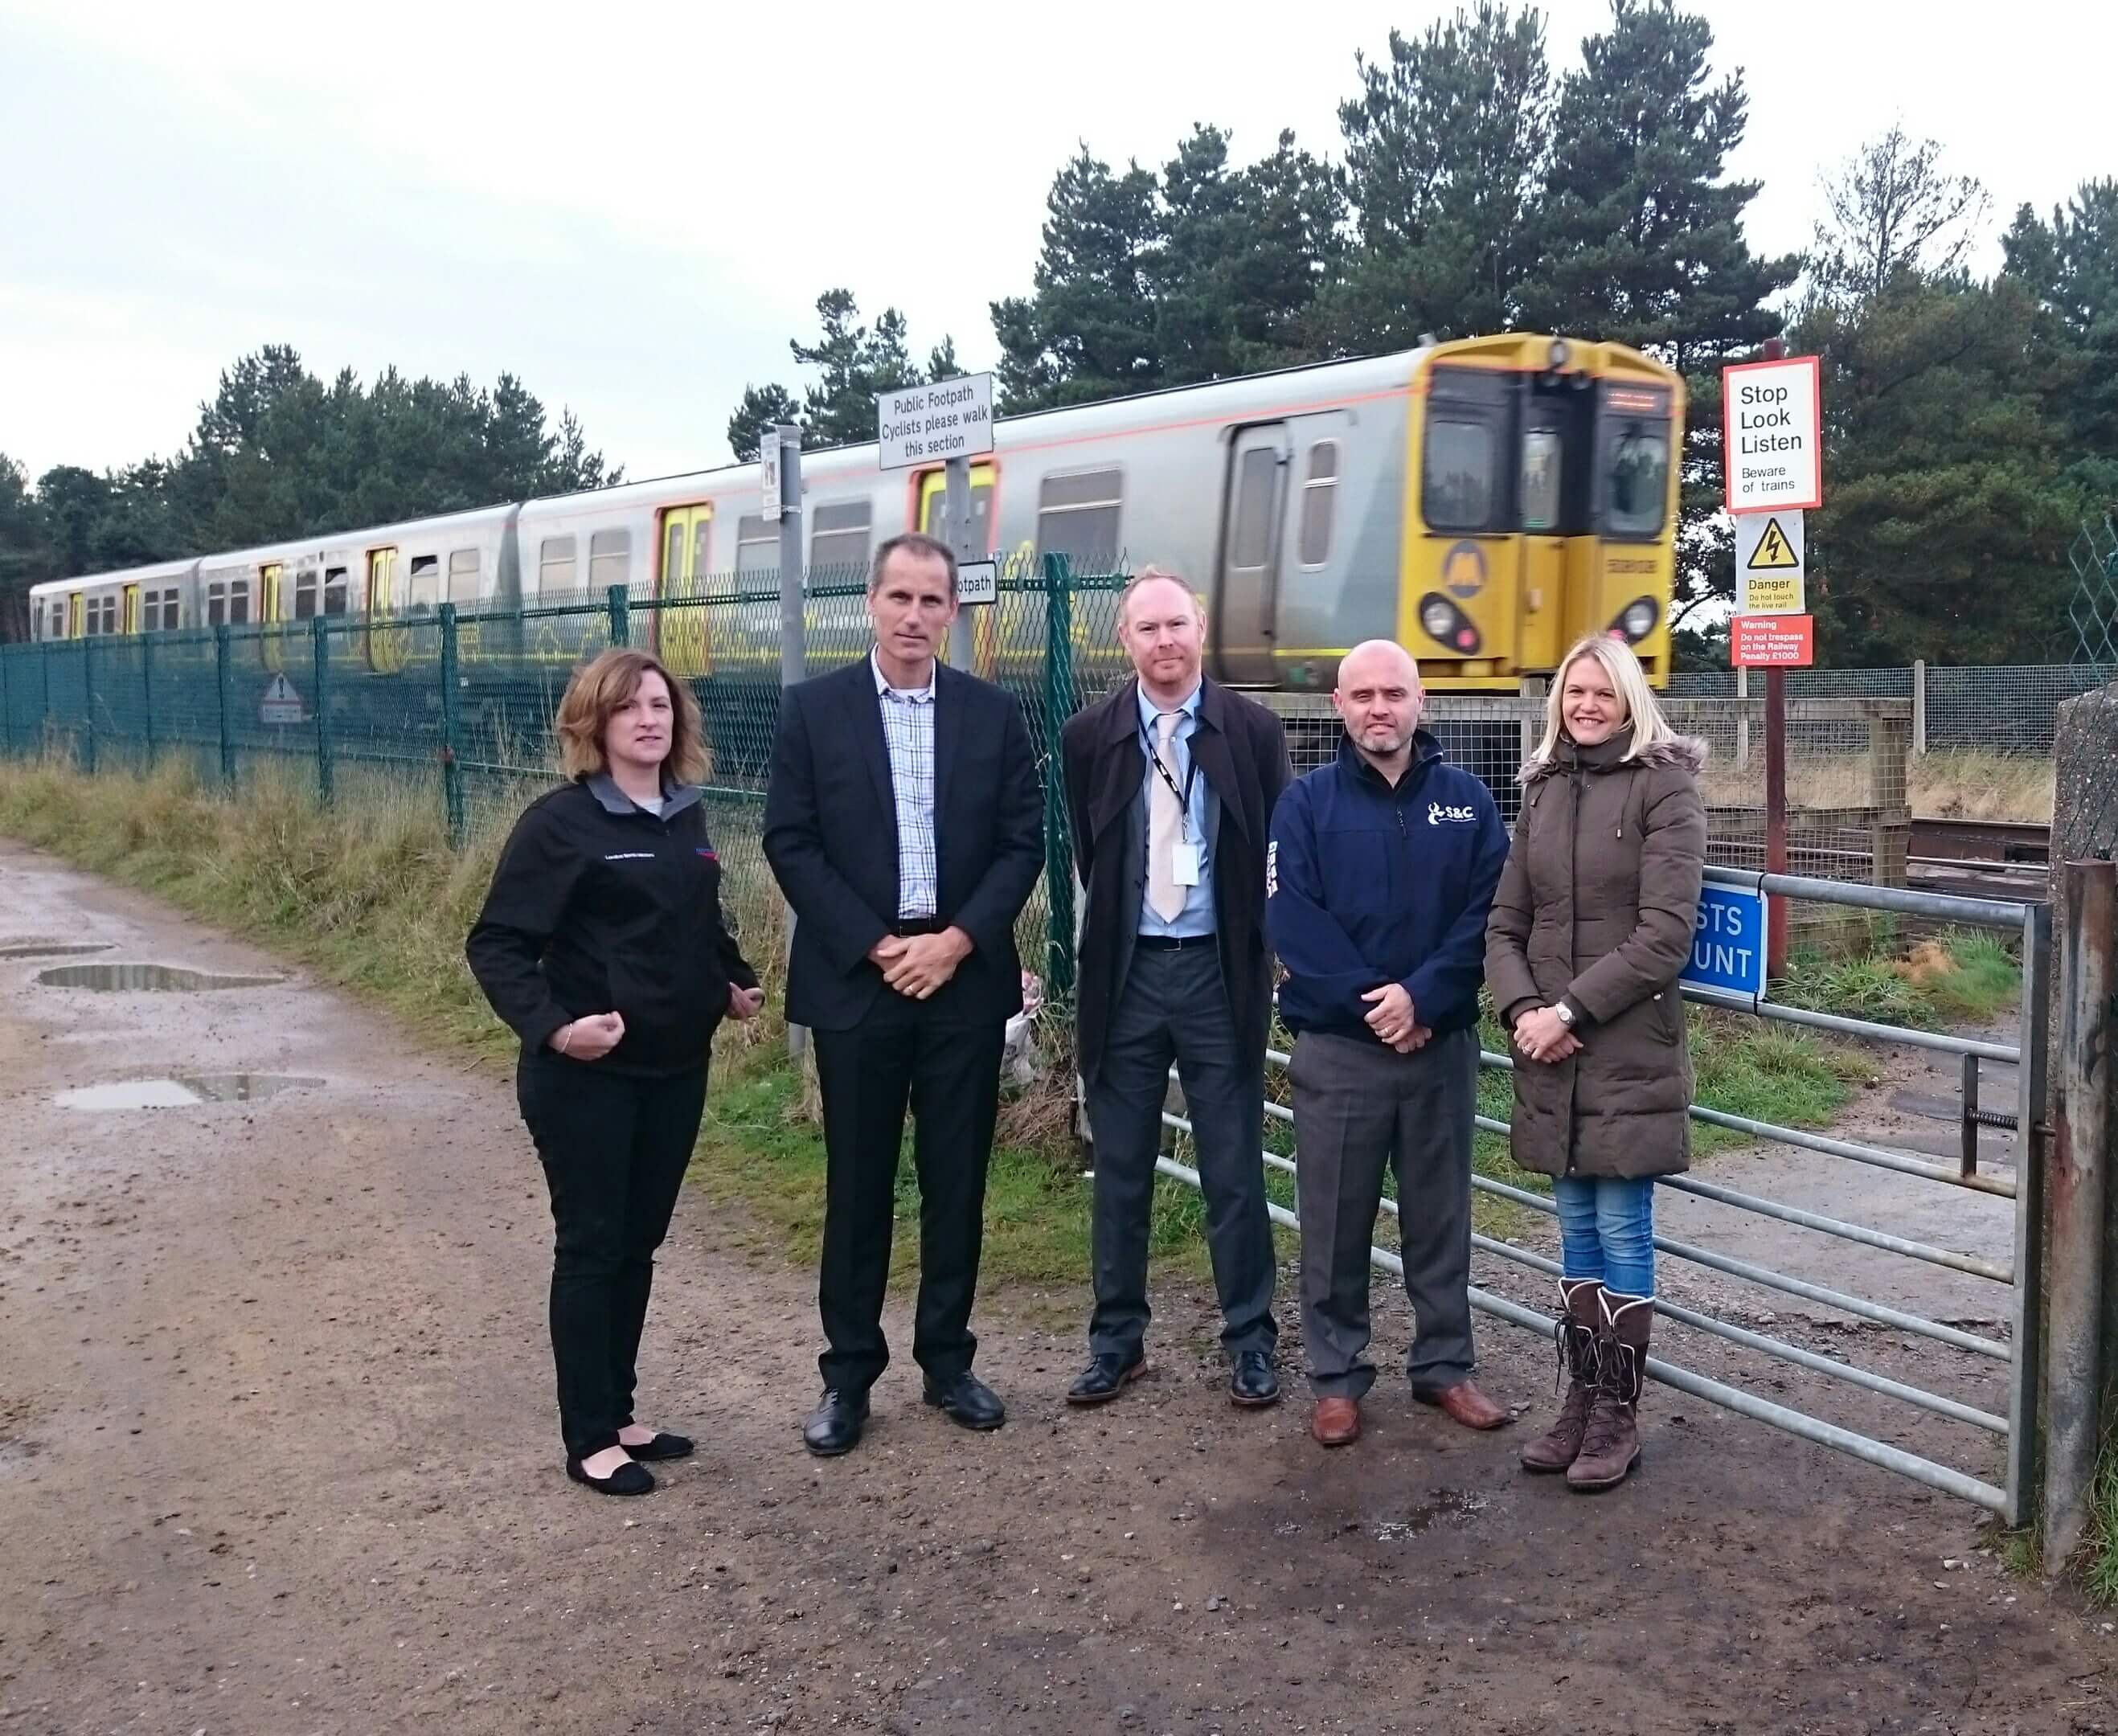 Sefton Central Labour MP Bill Esterson with Harington Ward Labour councillor Nina Killen during their meeting with Network Rail staff at Fishermans Path level crossing.